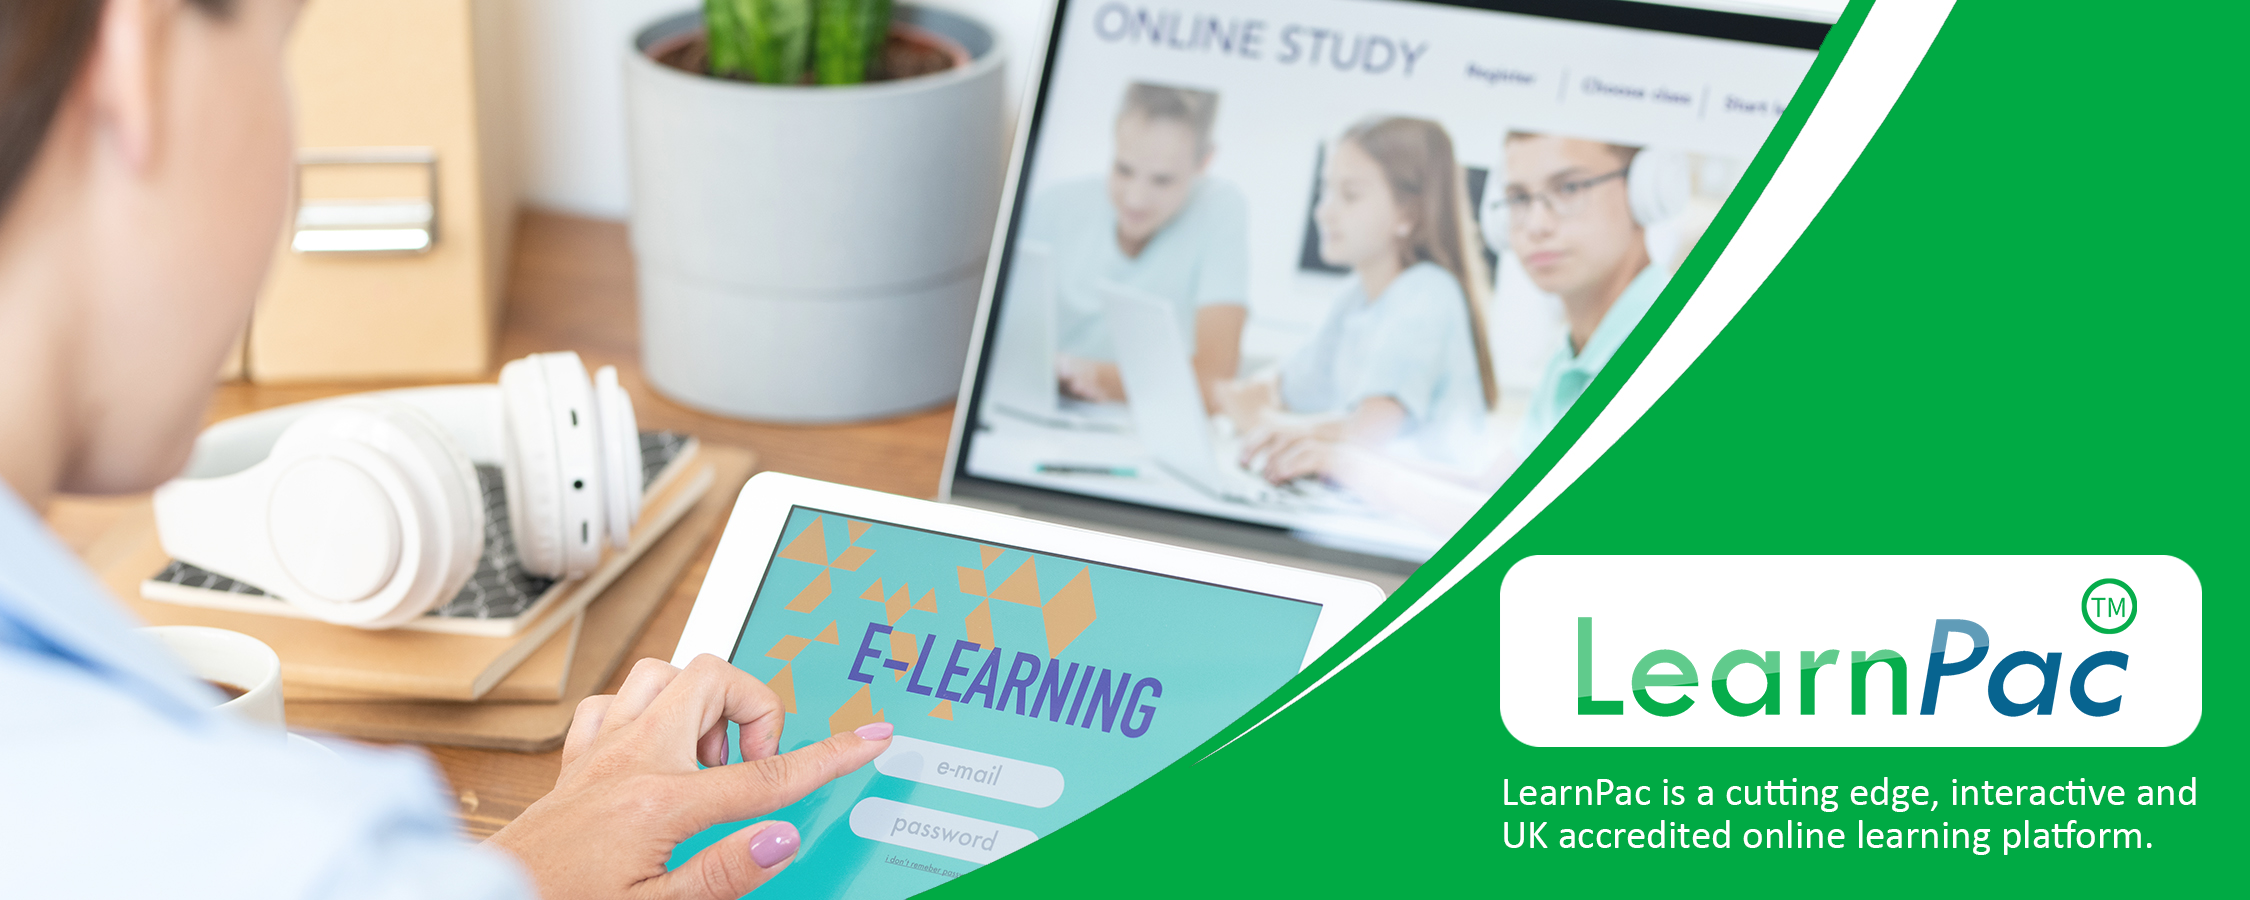 Care Certificate Standard 13 - Online Learning Courses - E-Learning Courses - LearnPac Systems UK -